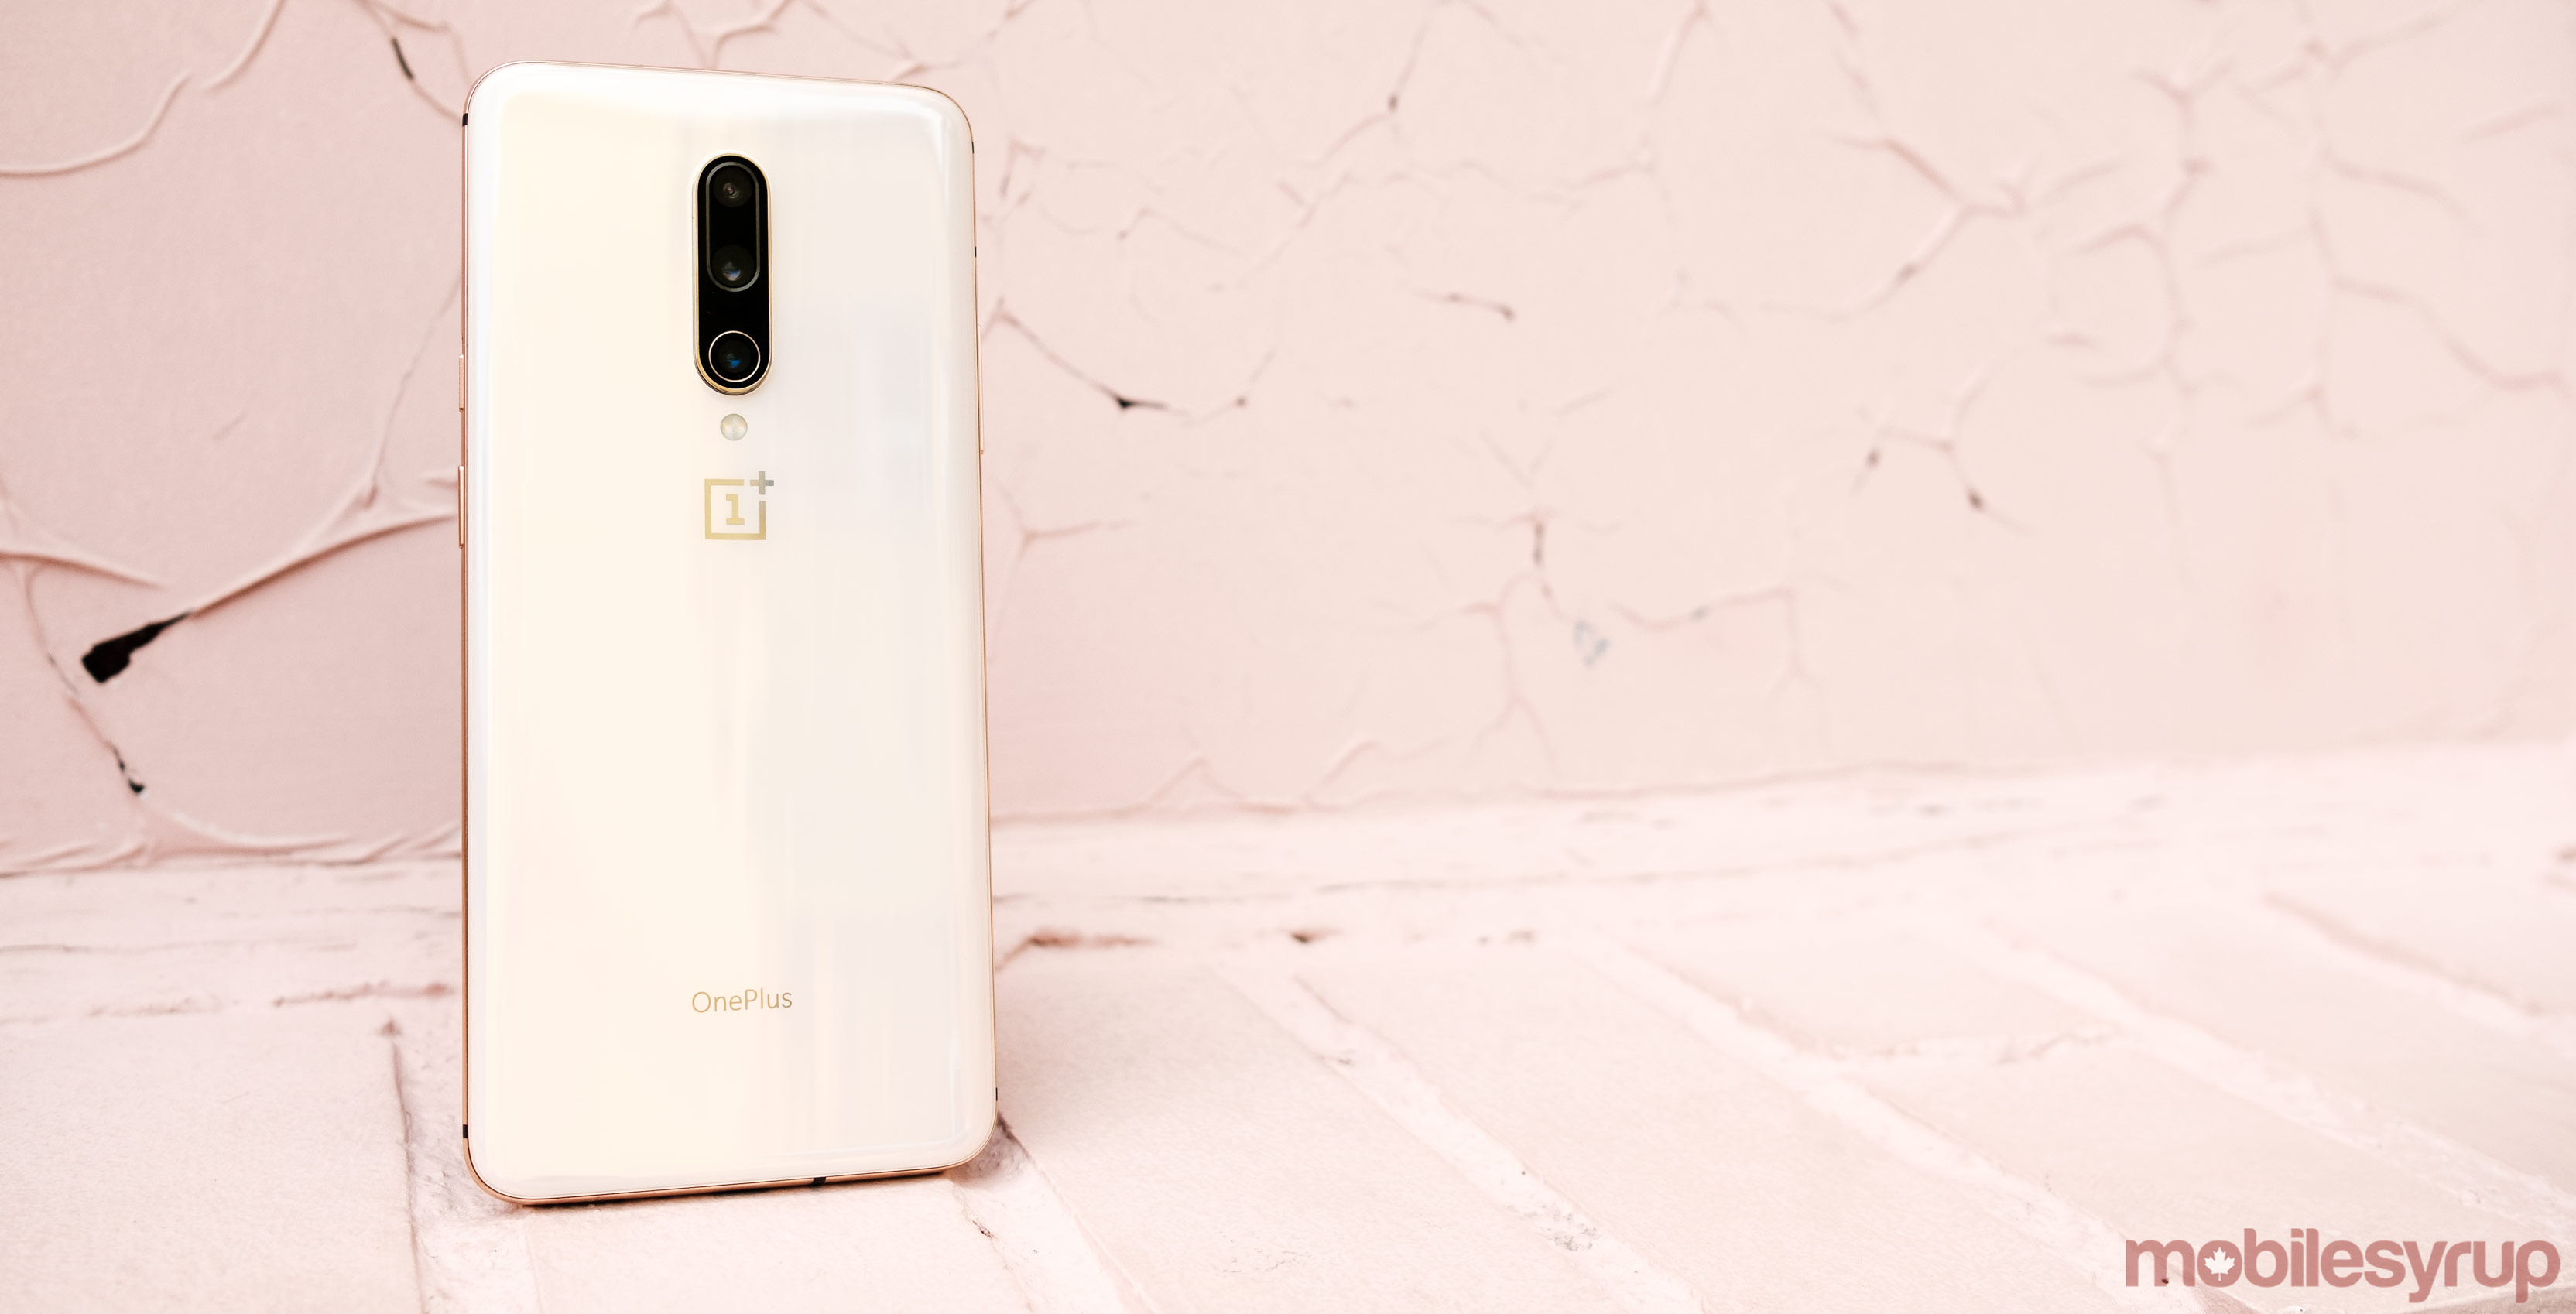 OnePlus may launch Smart TV the last week of September 2019